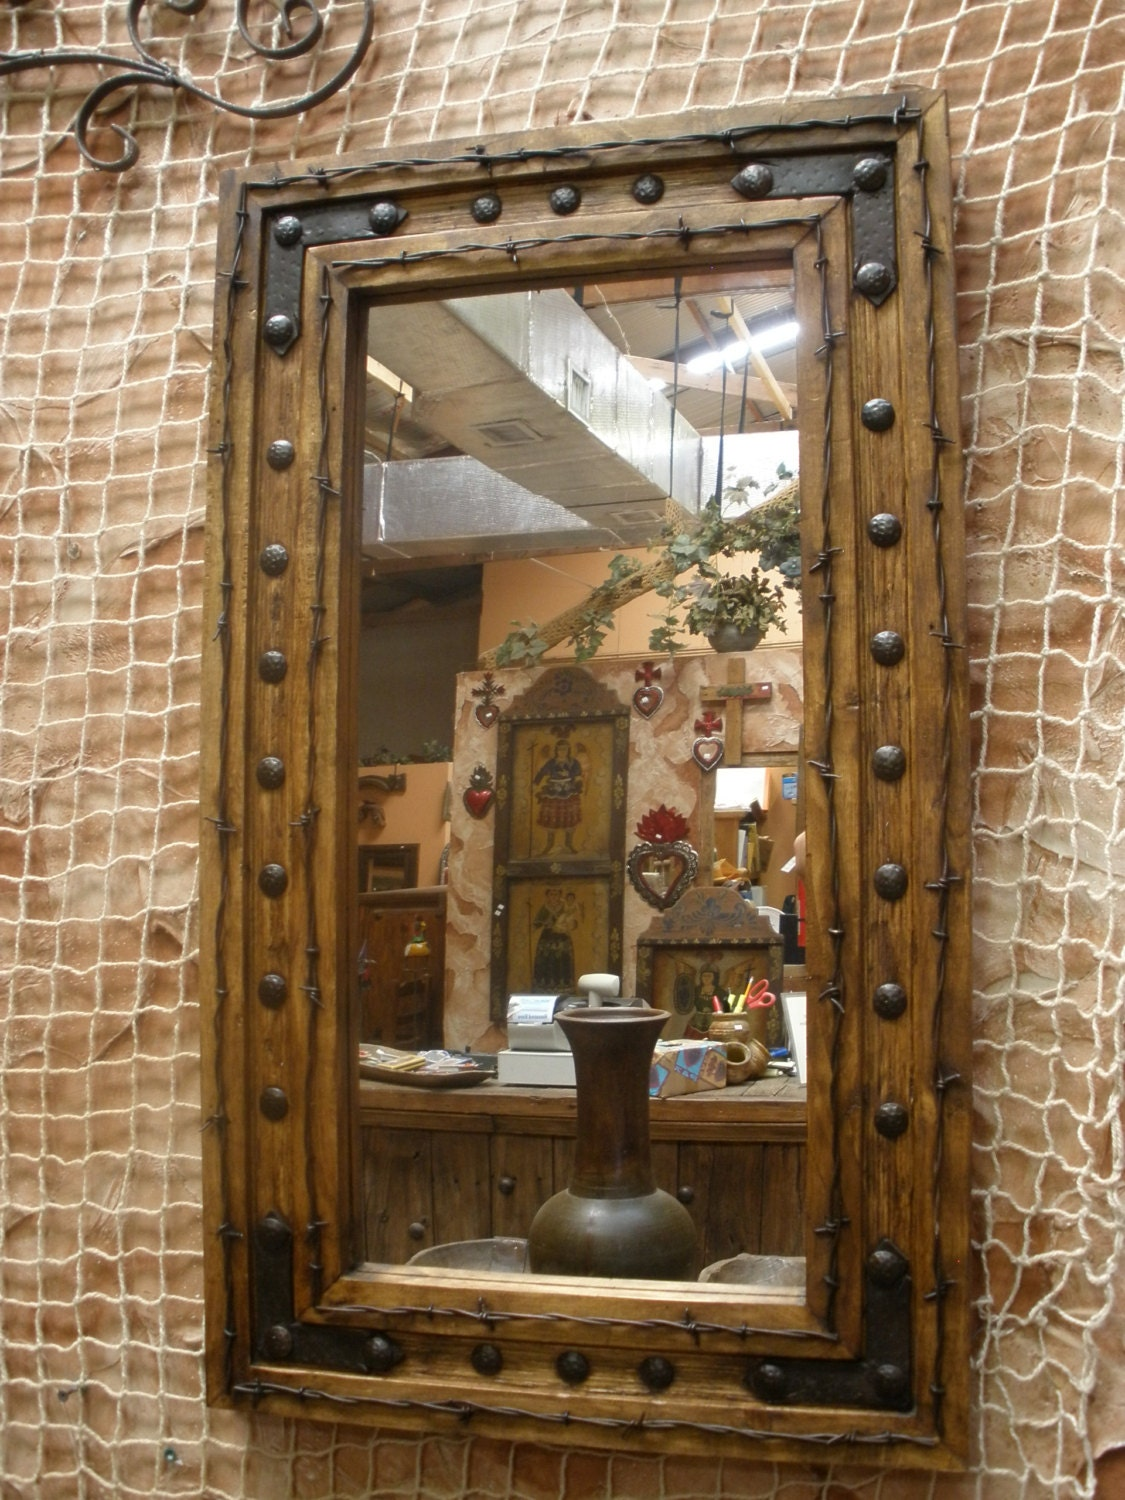 Rancho adobe rustic mirror 20x34 by ranchoadobe on etsy for Rustic mirror